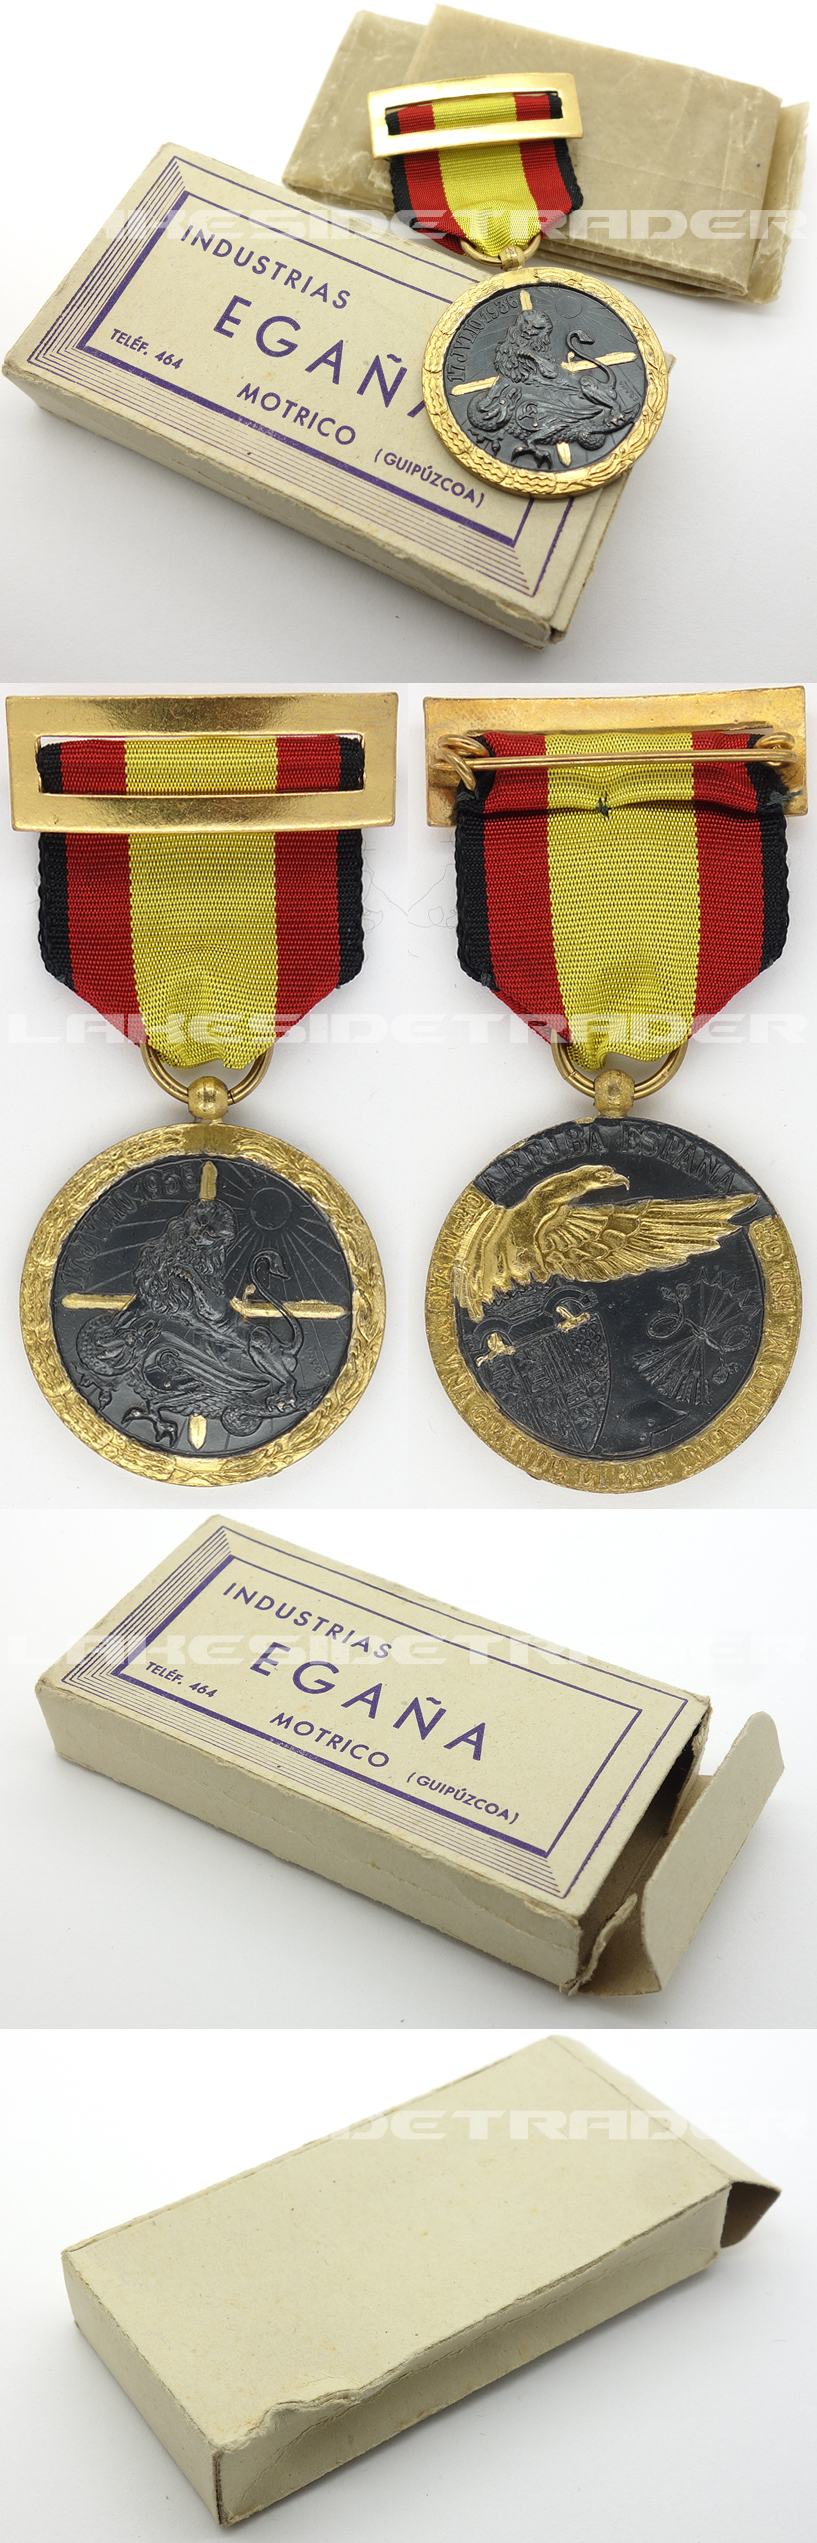 Cased Spanish Civil War Campaign Medal 1936-39 by I. Egaña